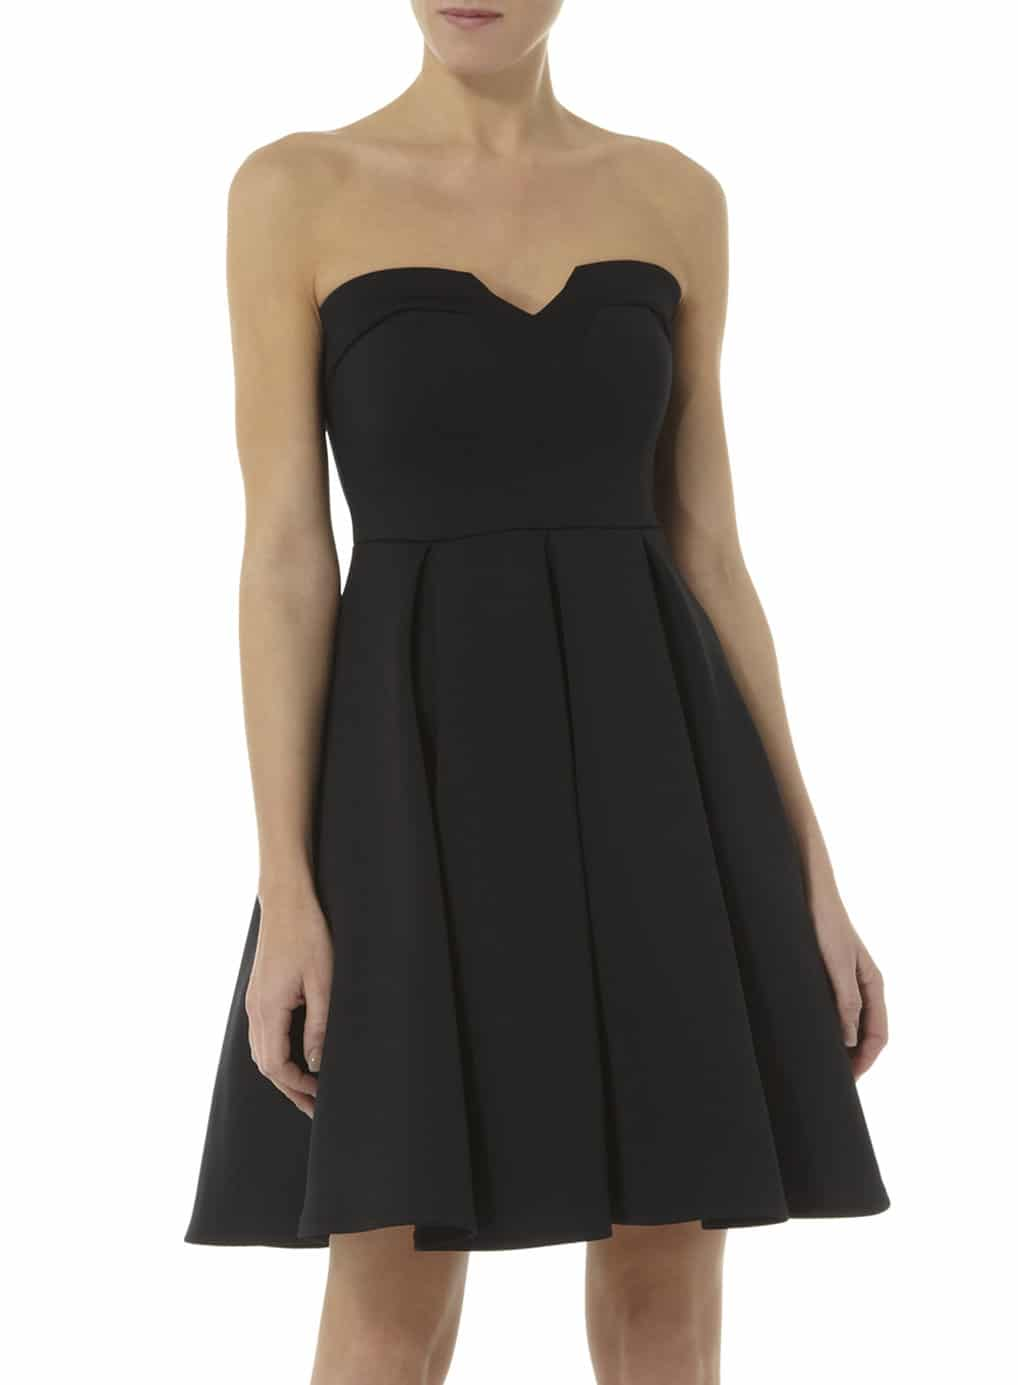 dorothy perkins christmas party dress student